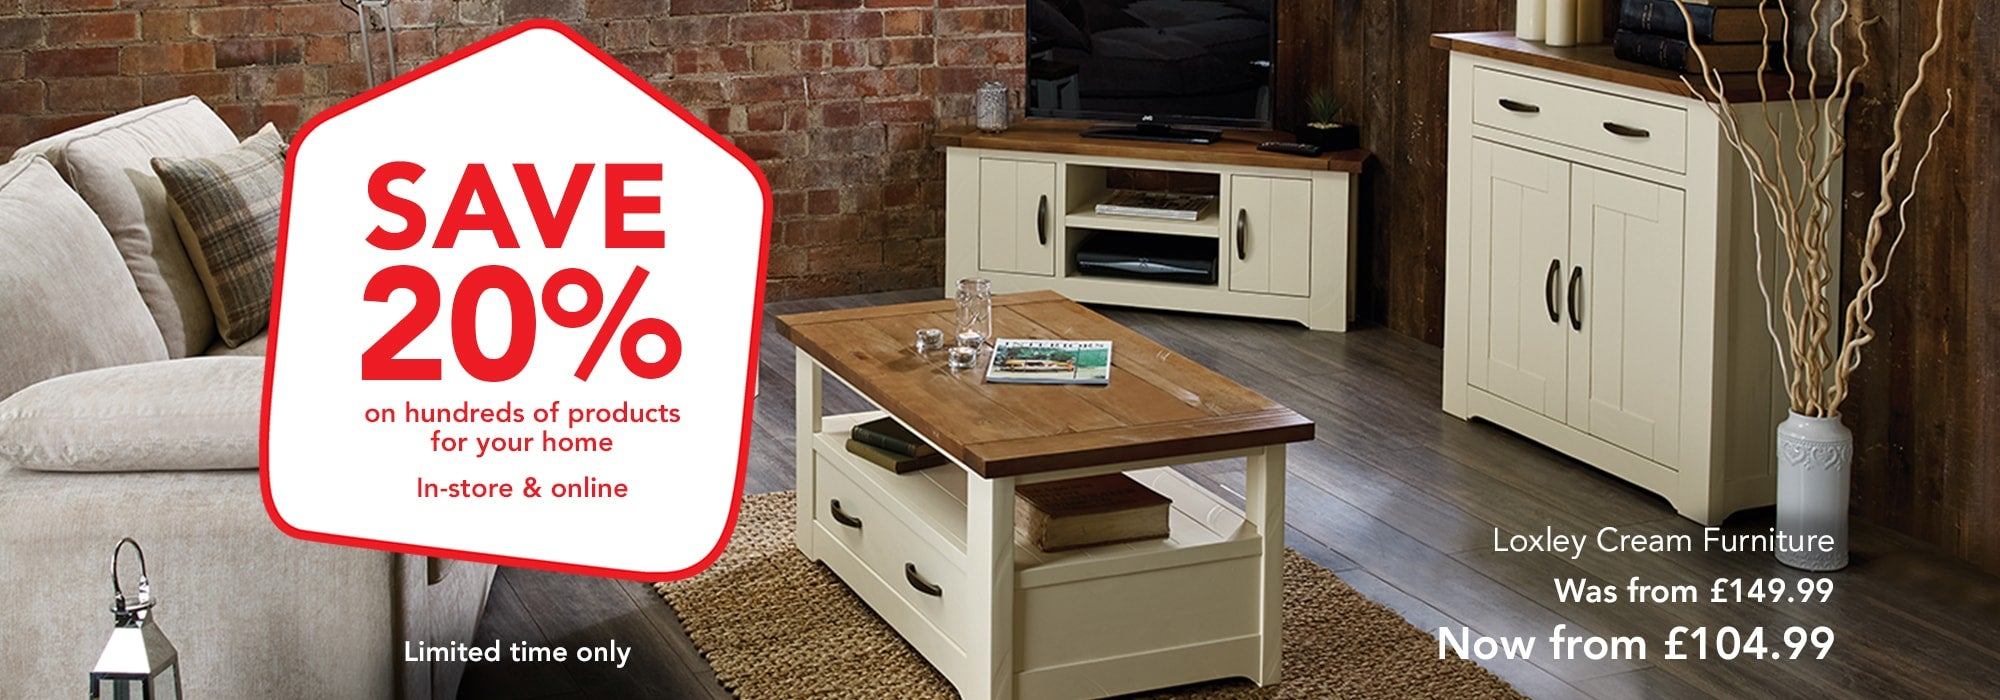 SAVE 20% on hundreds of products for your home